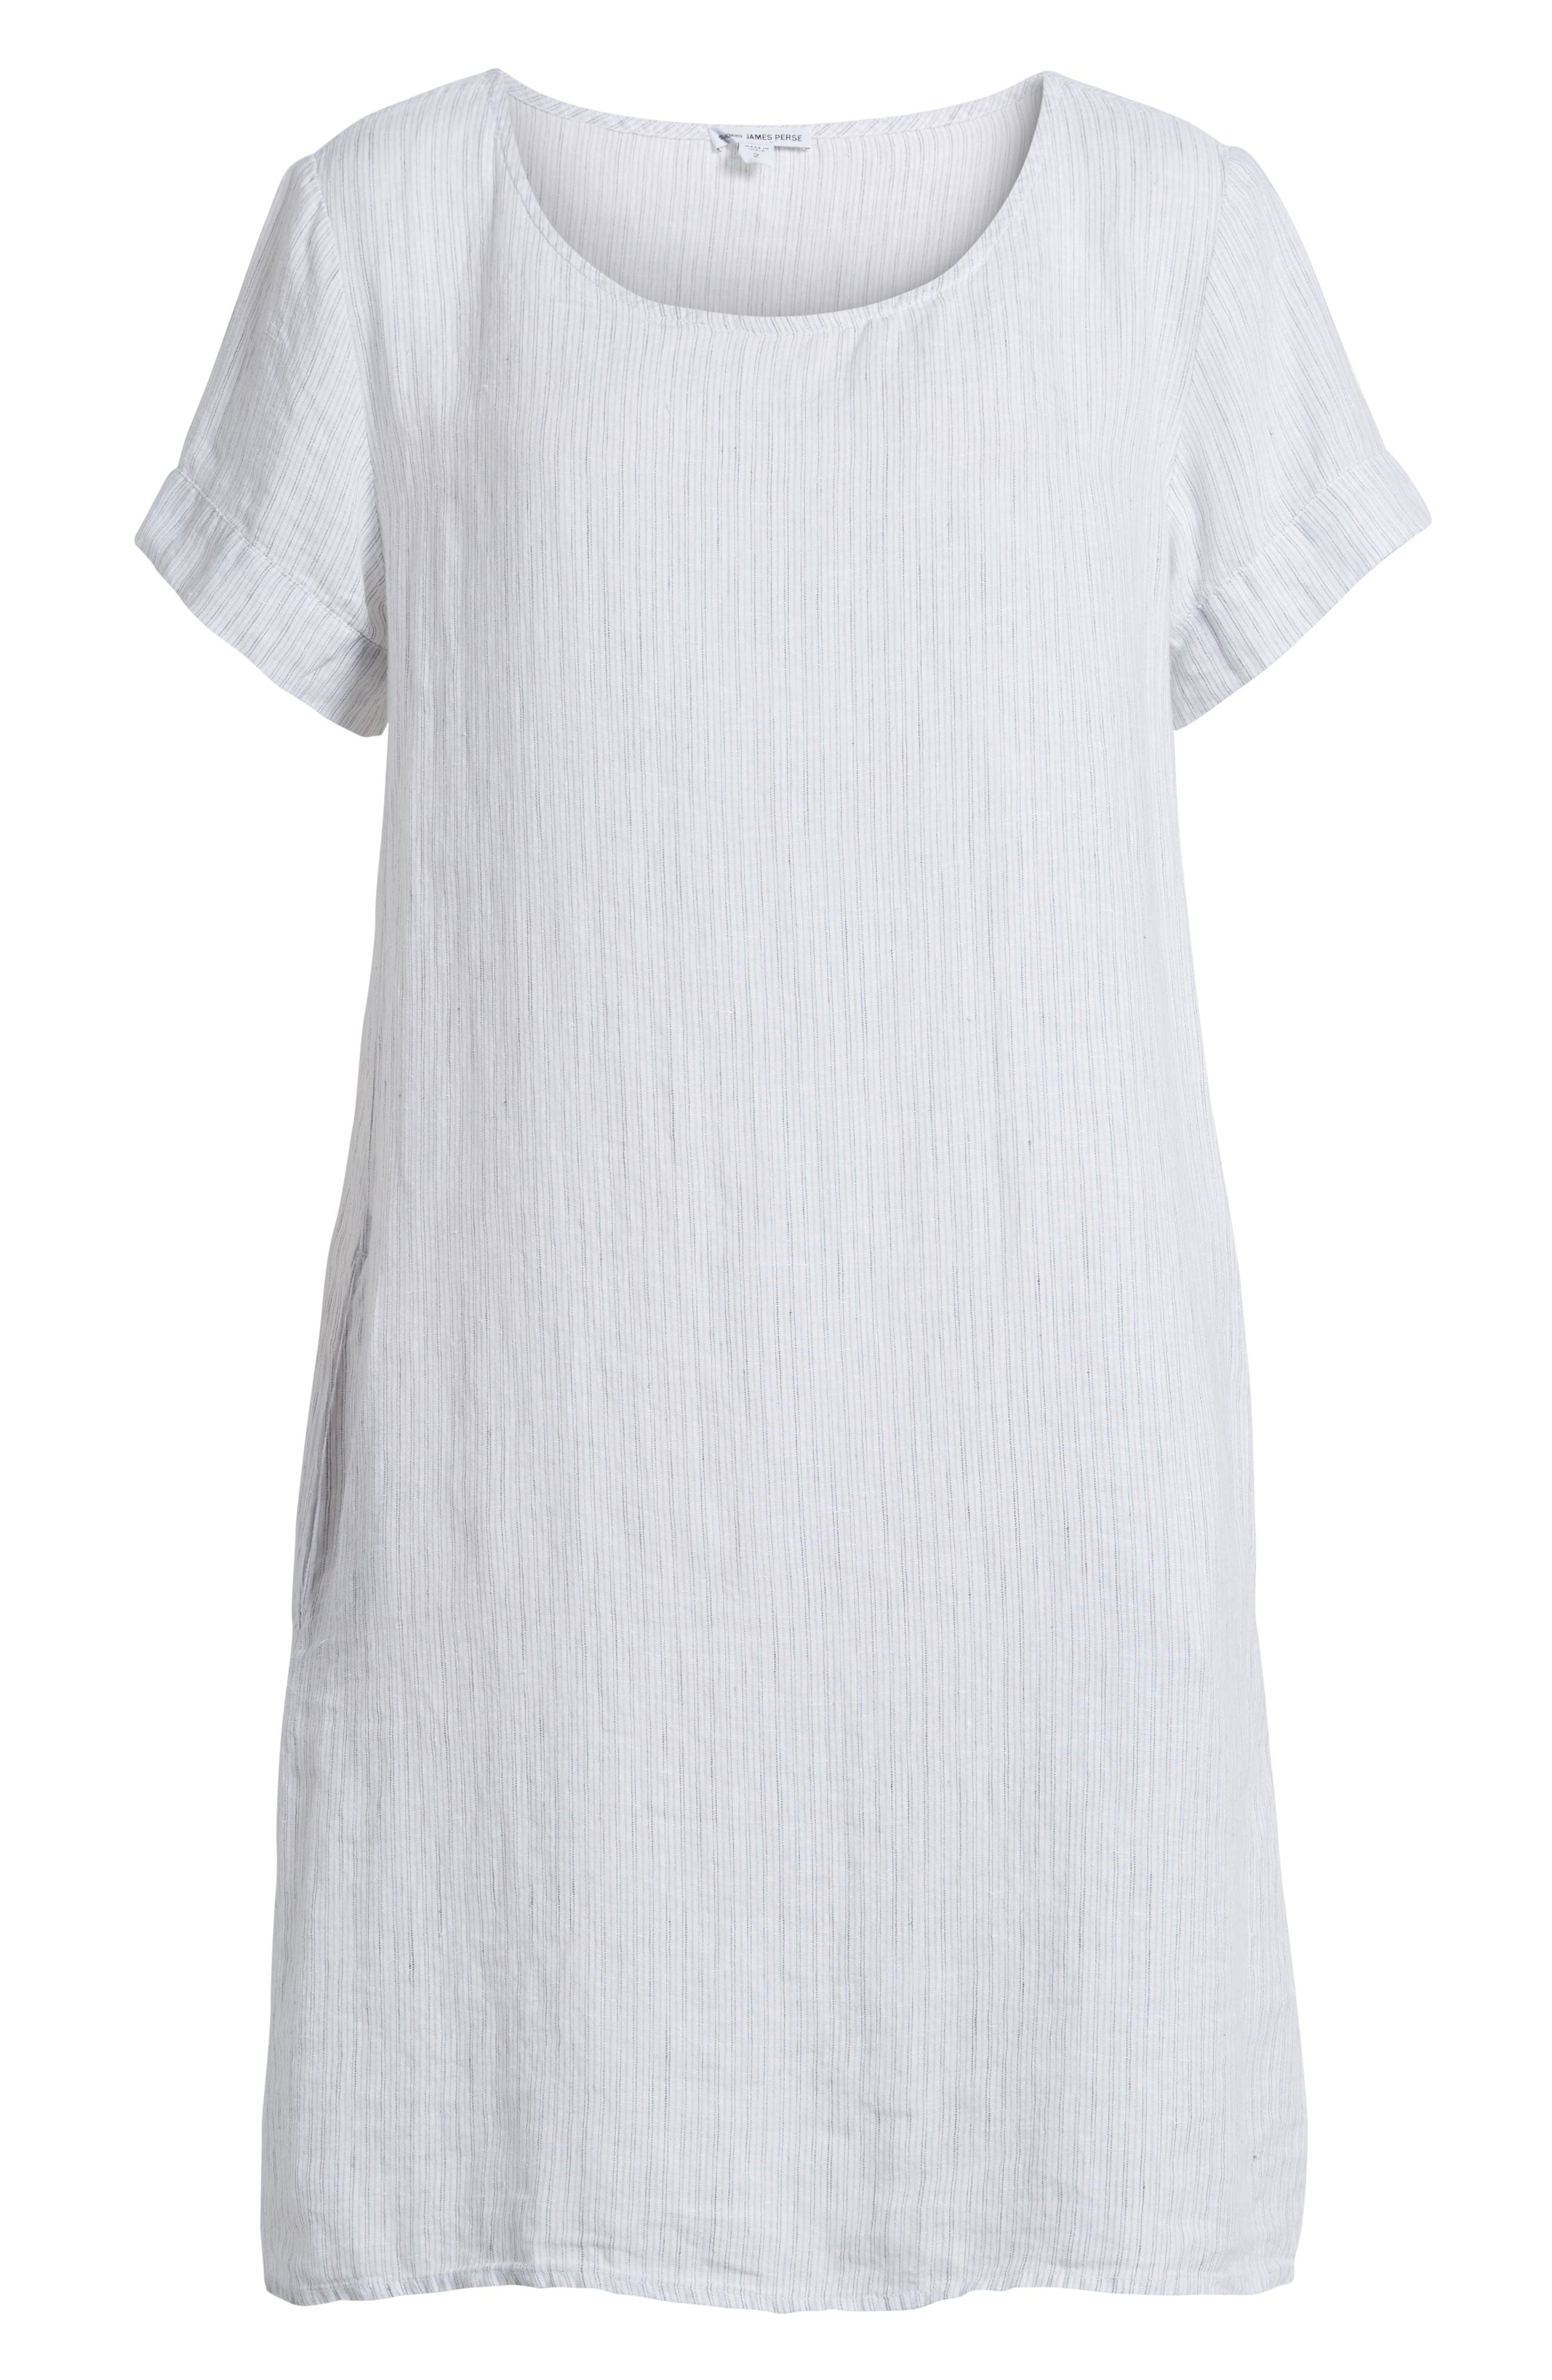 Stripe Linen Dress,                             Alternate thumbnail 6, color,                             053